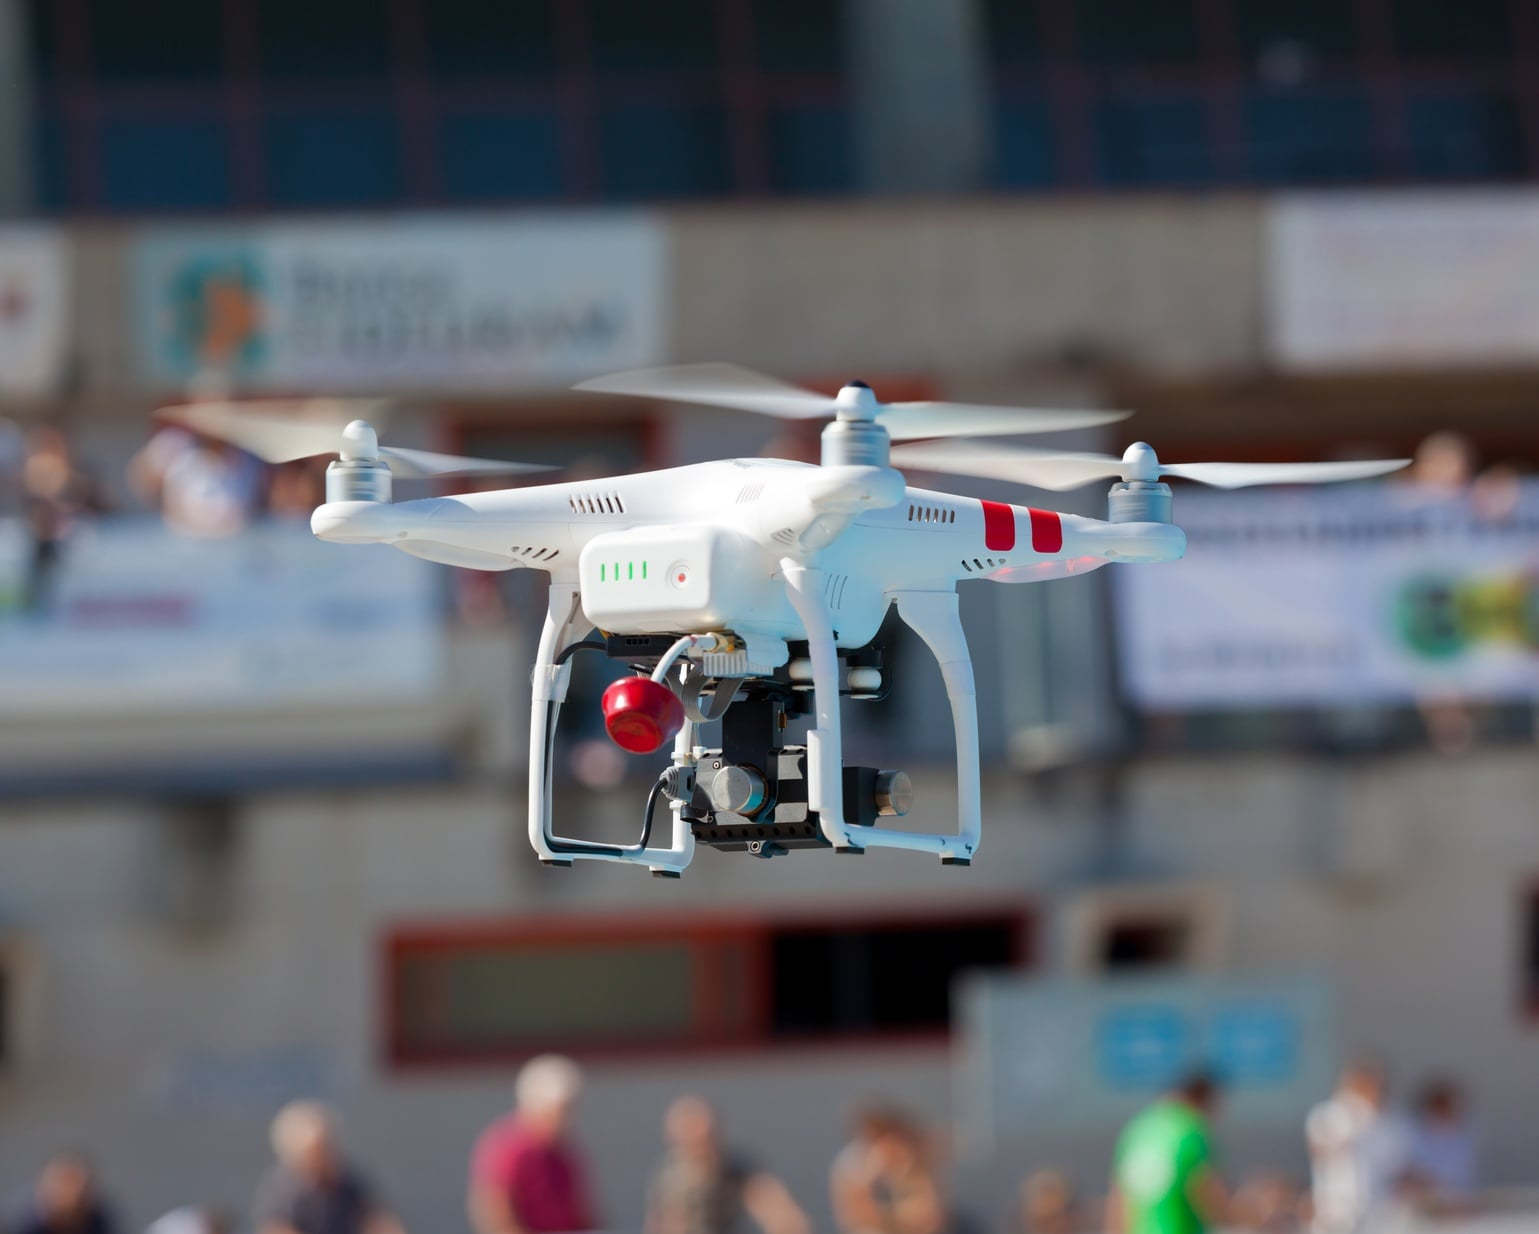 Drone video can showcase elements of your business that are impossible or costly to capture otherwise.